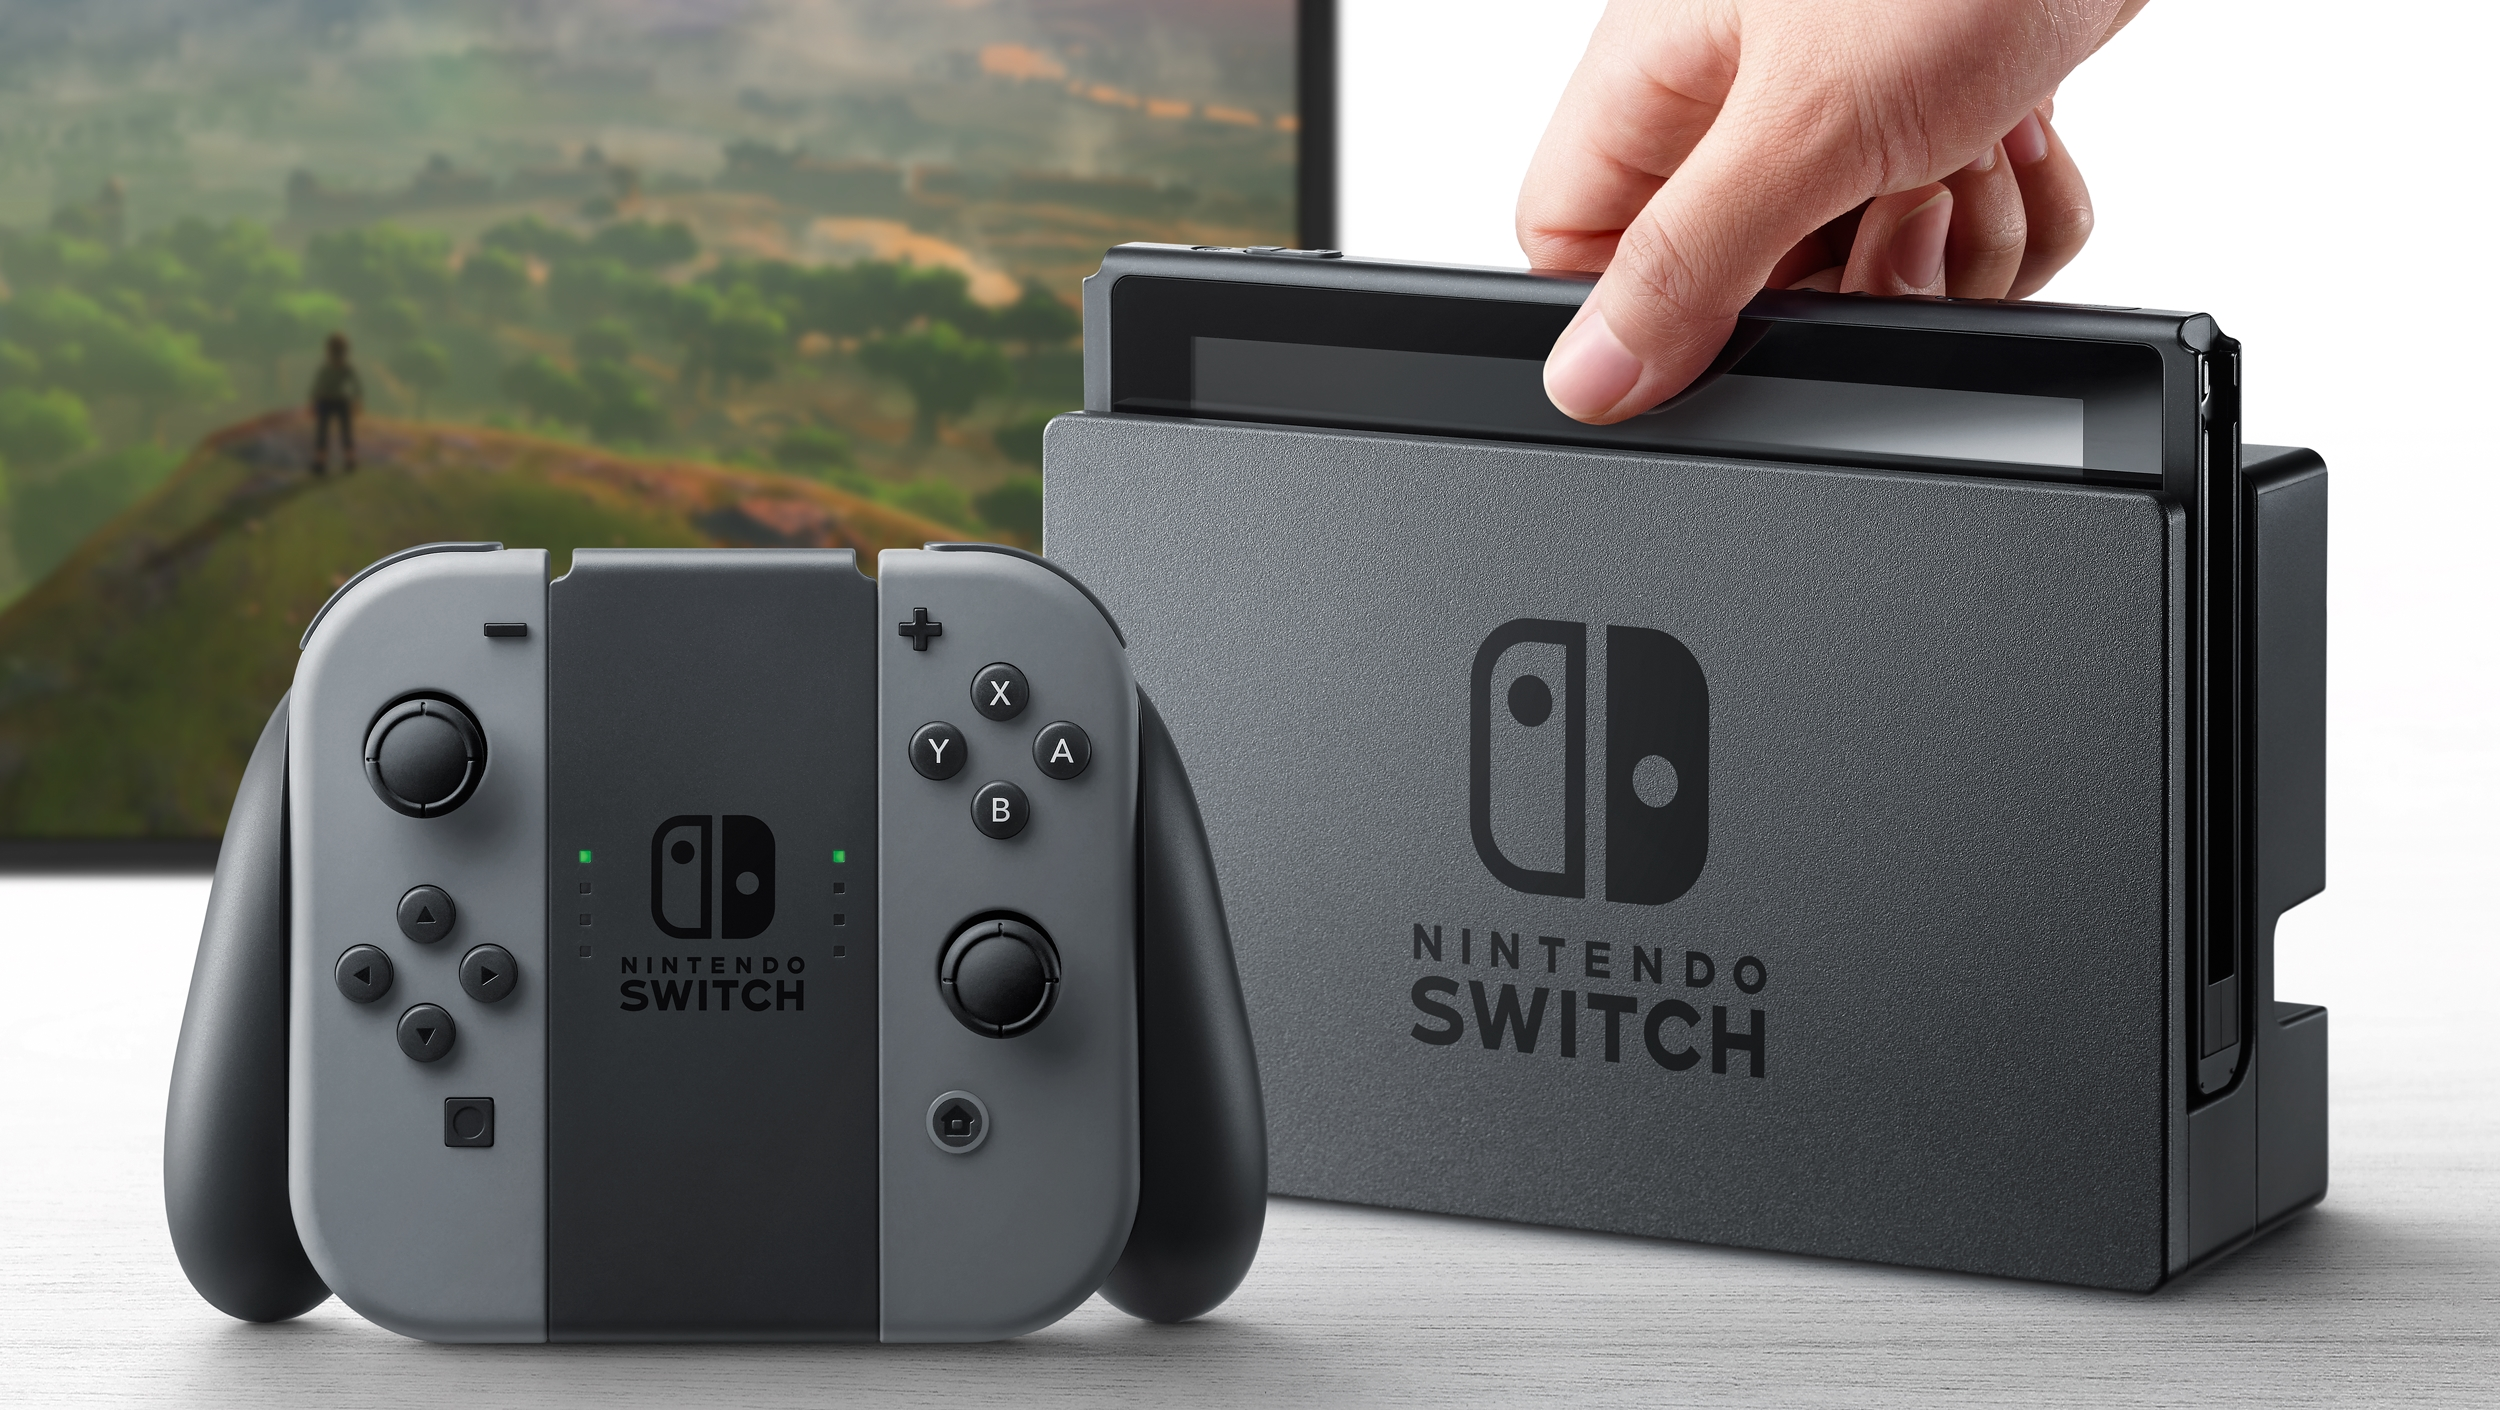 Nintendo Switch online service will be £14 to £21 a year